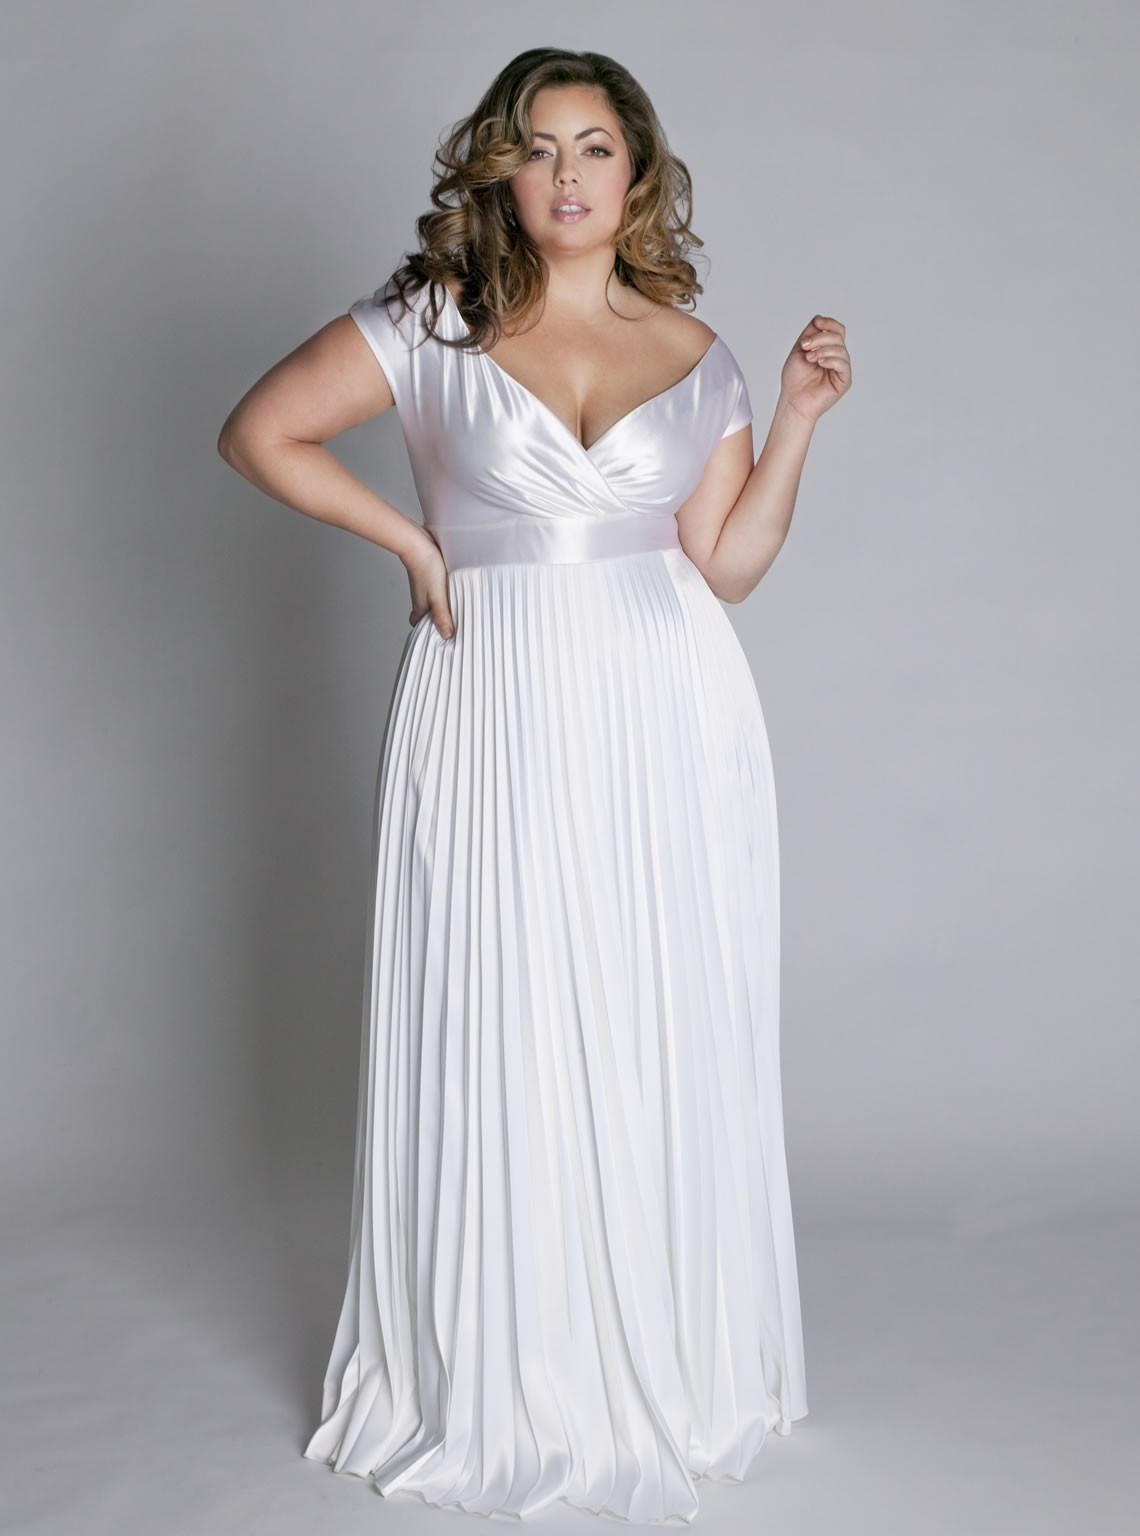 Women plus size dresses women dresses for Women s dresses for weddings